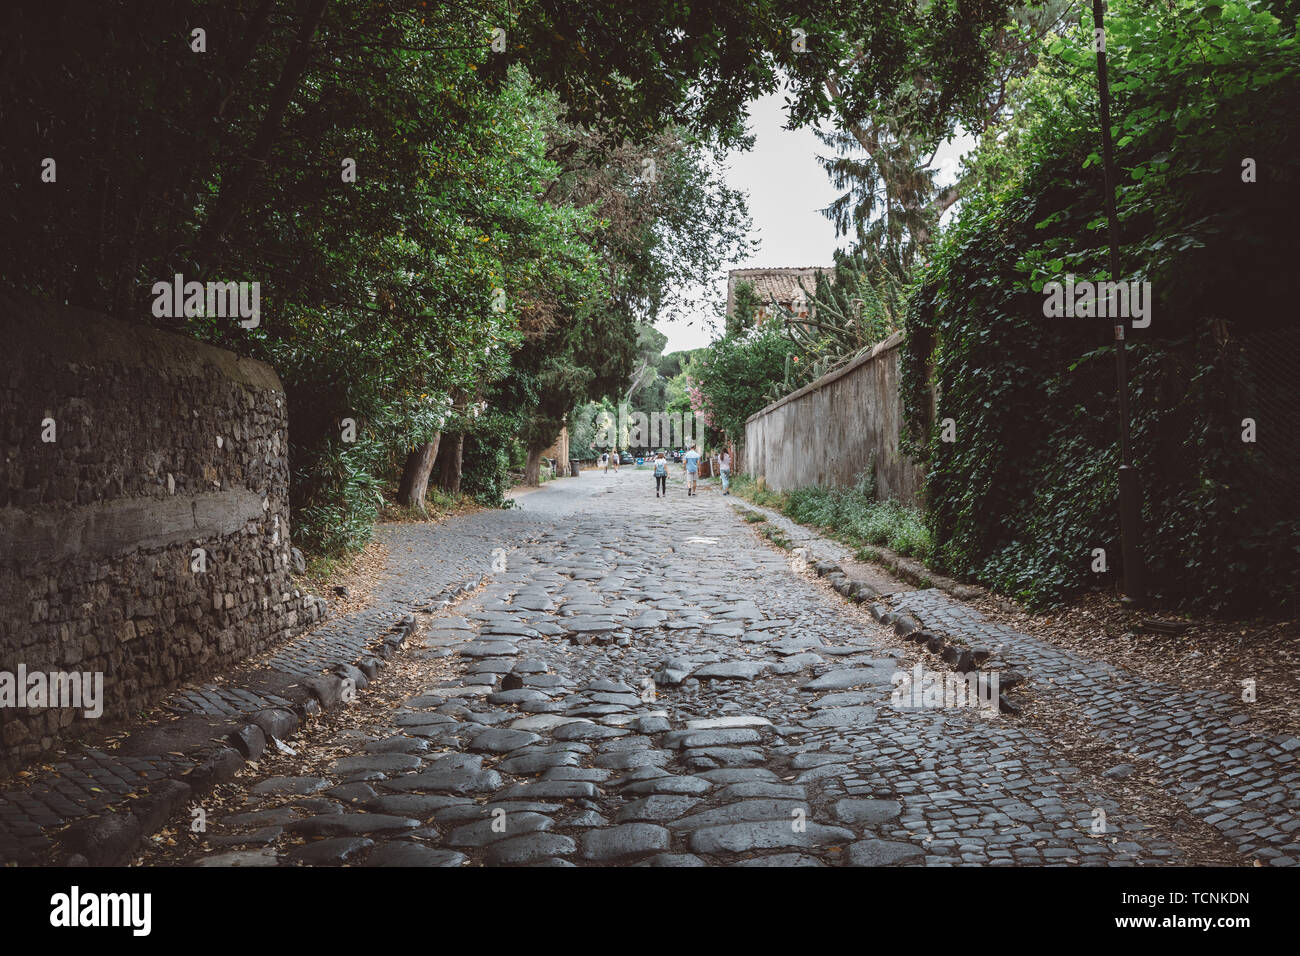 Rome, Italy - June 23, 2018: Panoramic view of Appian Way (Via Appia) is one of the earliest and strategically most important Roman roads of the ancie - Stock Image